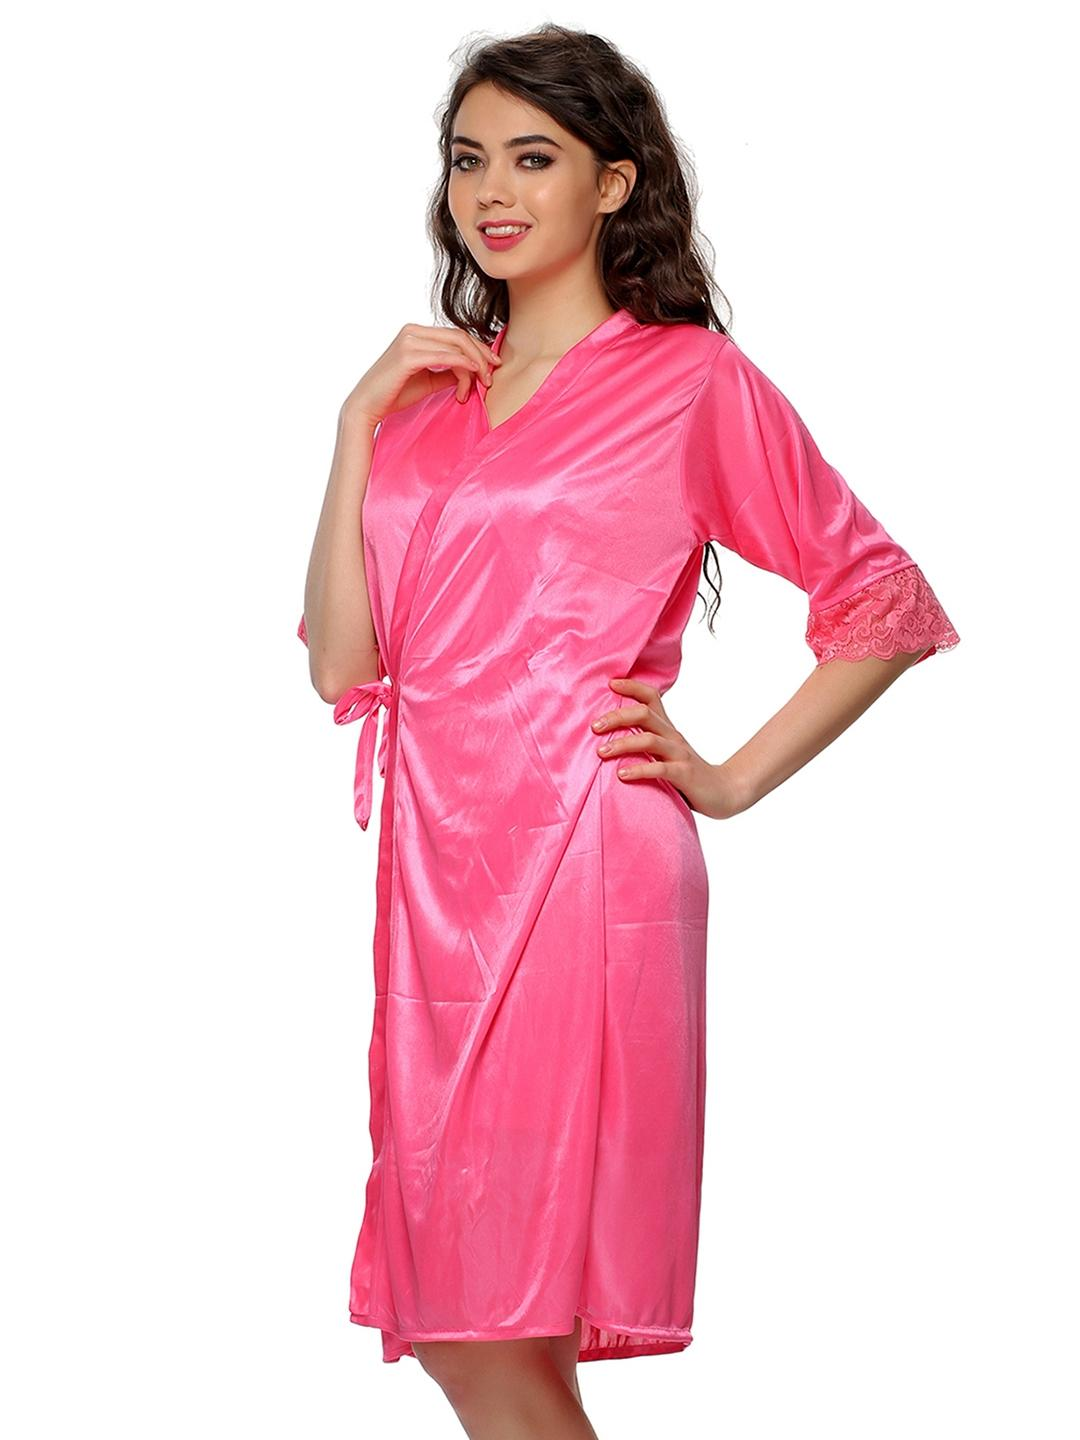 Buy Clovia Robes at Best Prices Online in Sri Lanka - daraz.lk 426c8fd4f